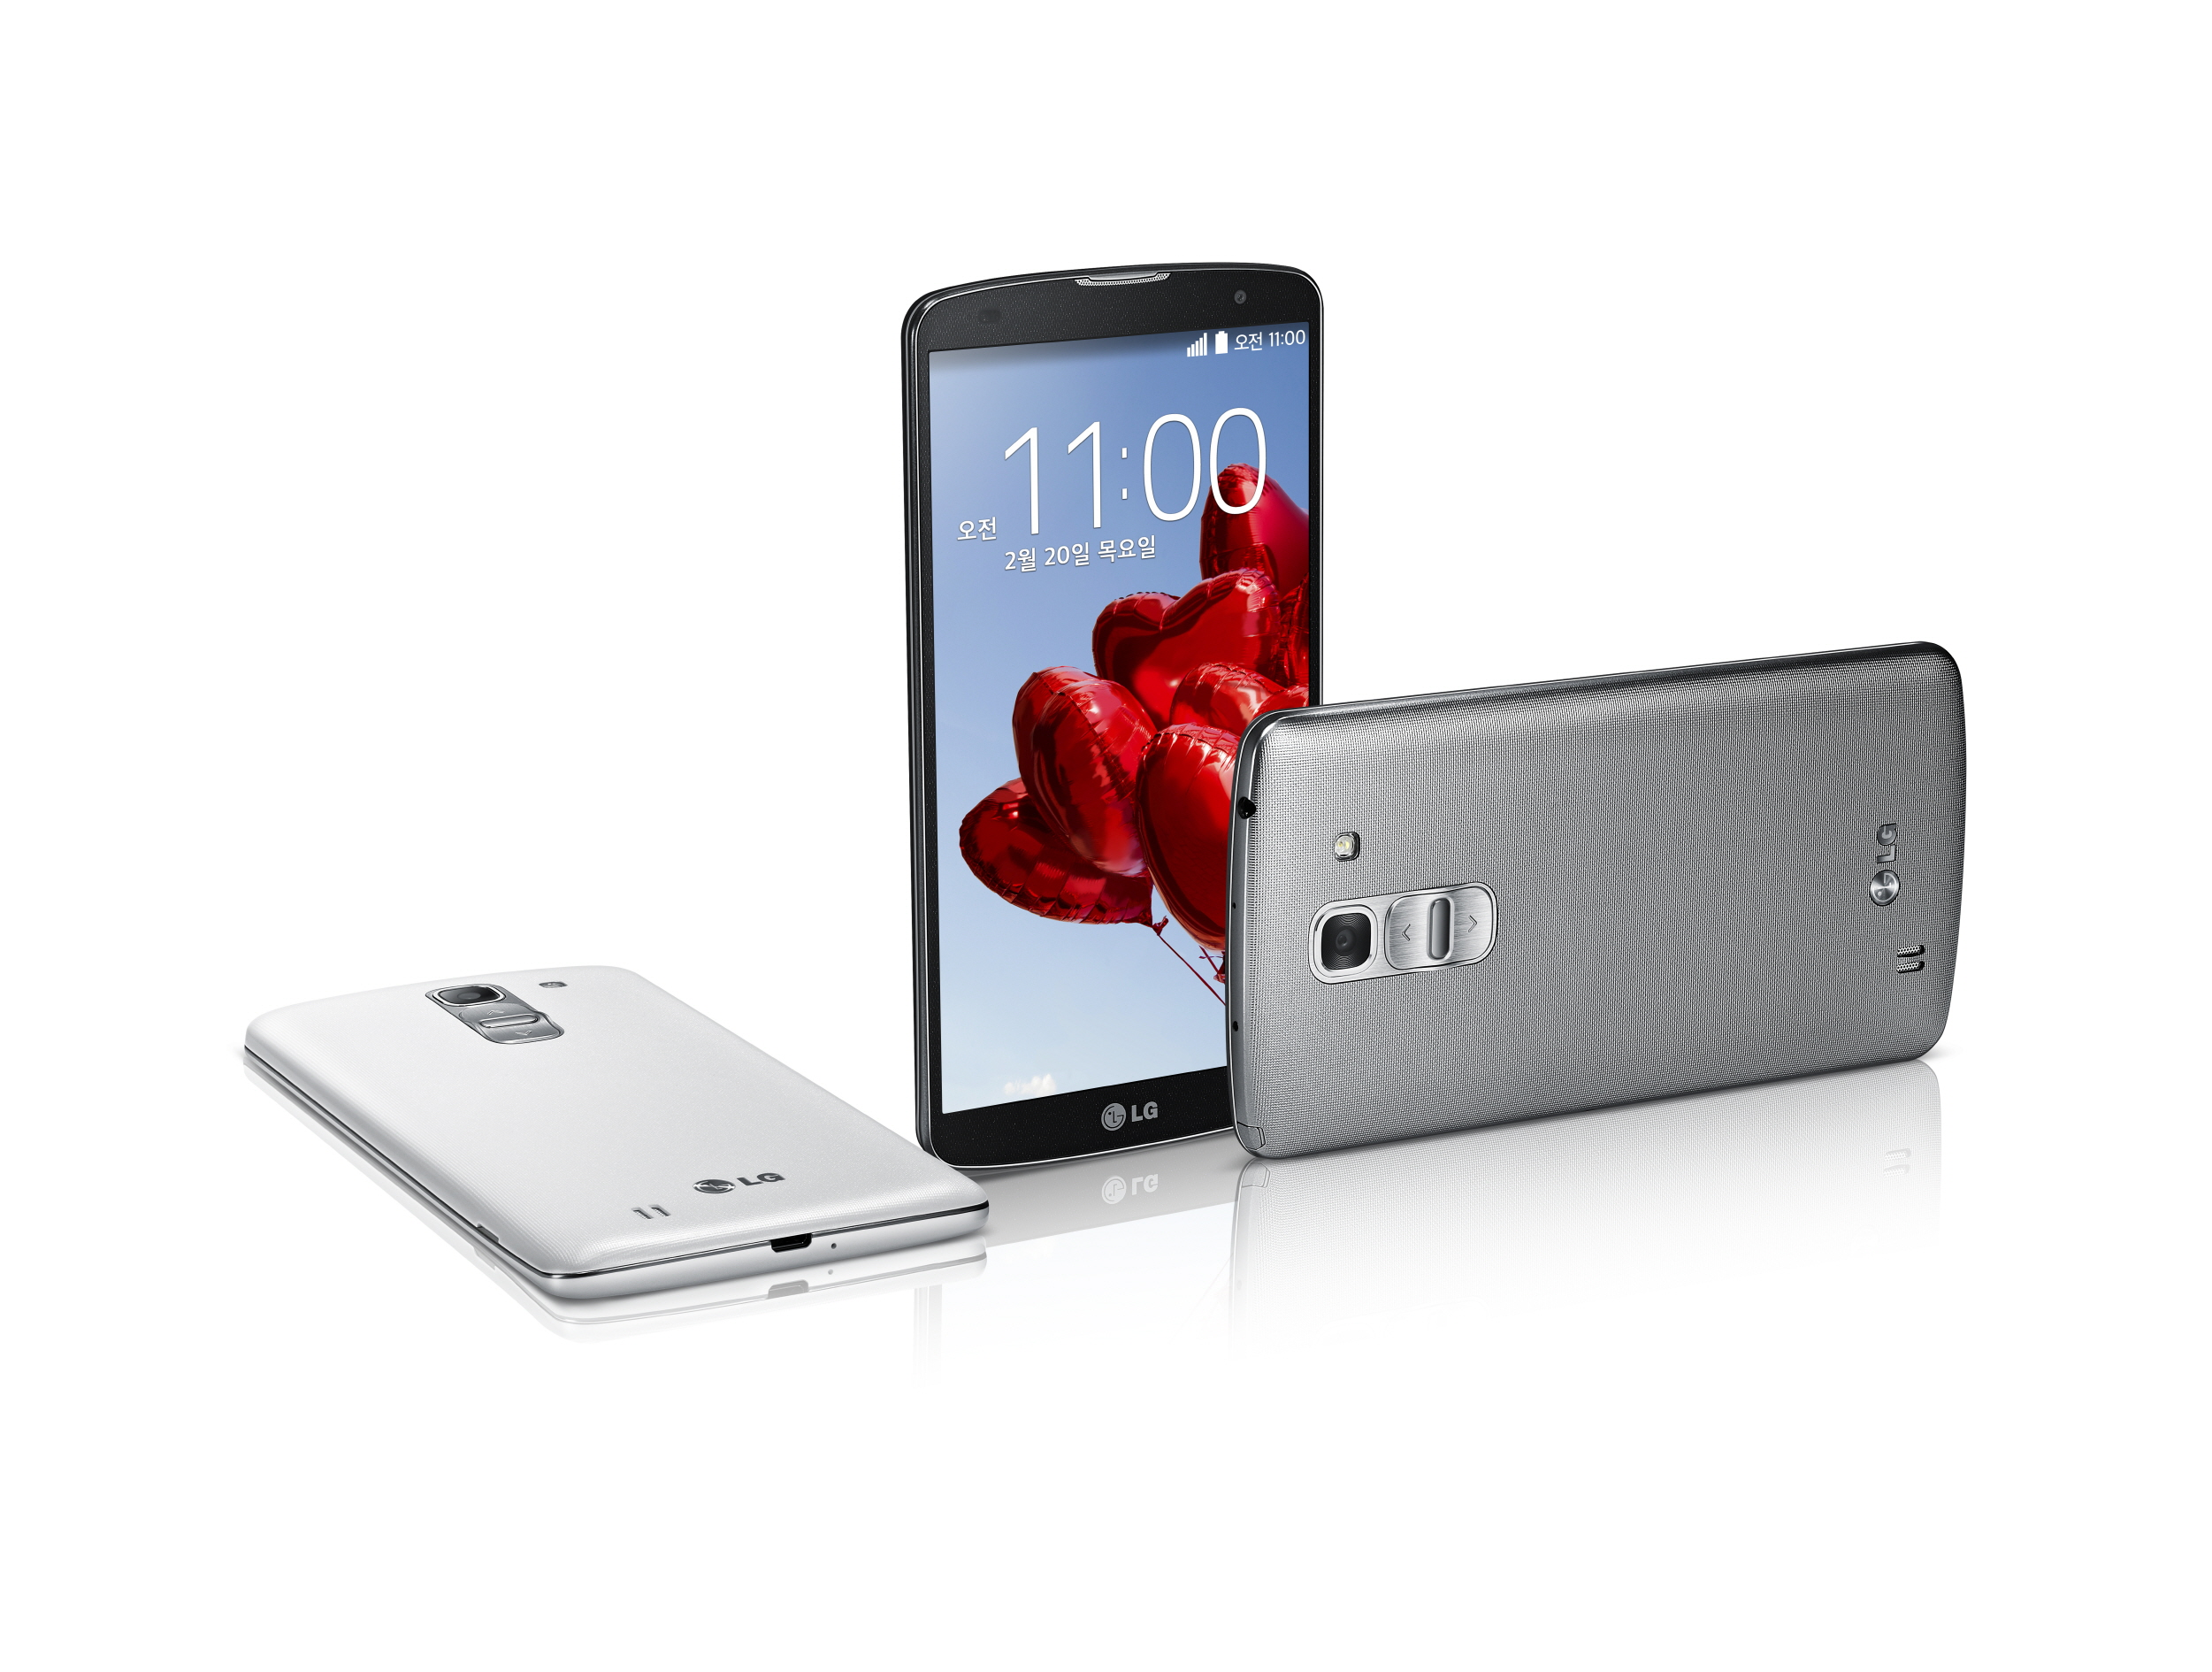 From left to right; The LG G Pro 2 in white face down, in Titan Black color standing upright, and in silver lying on its side.